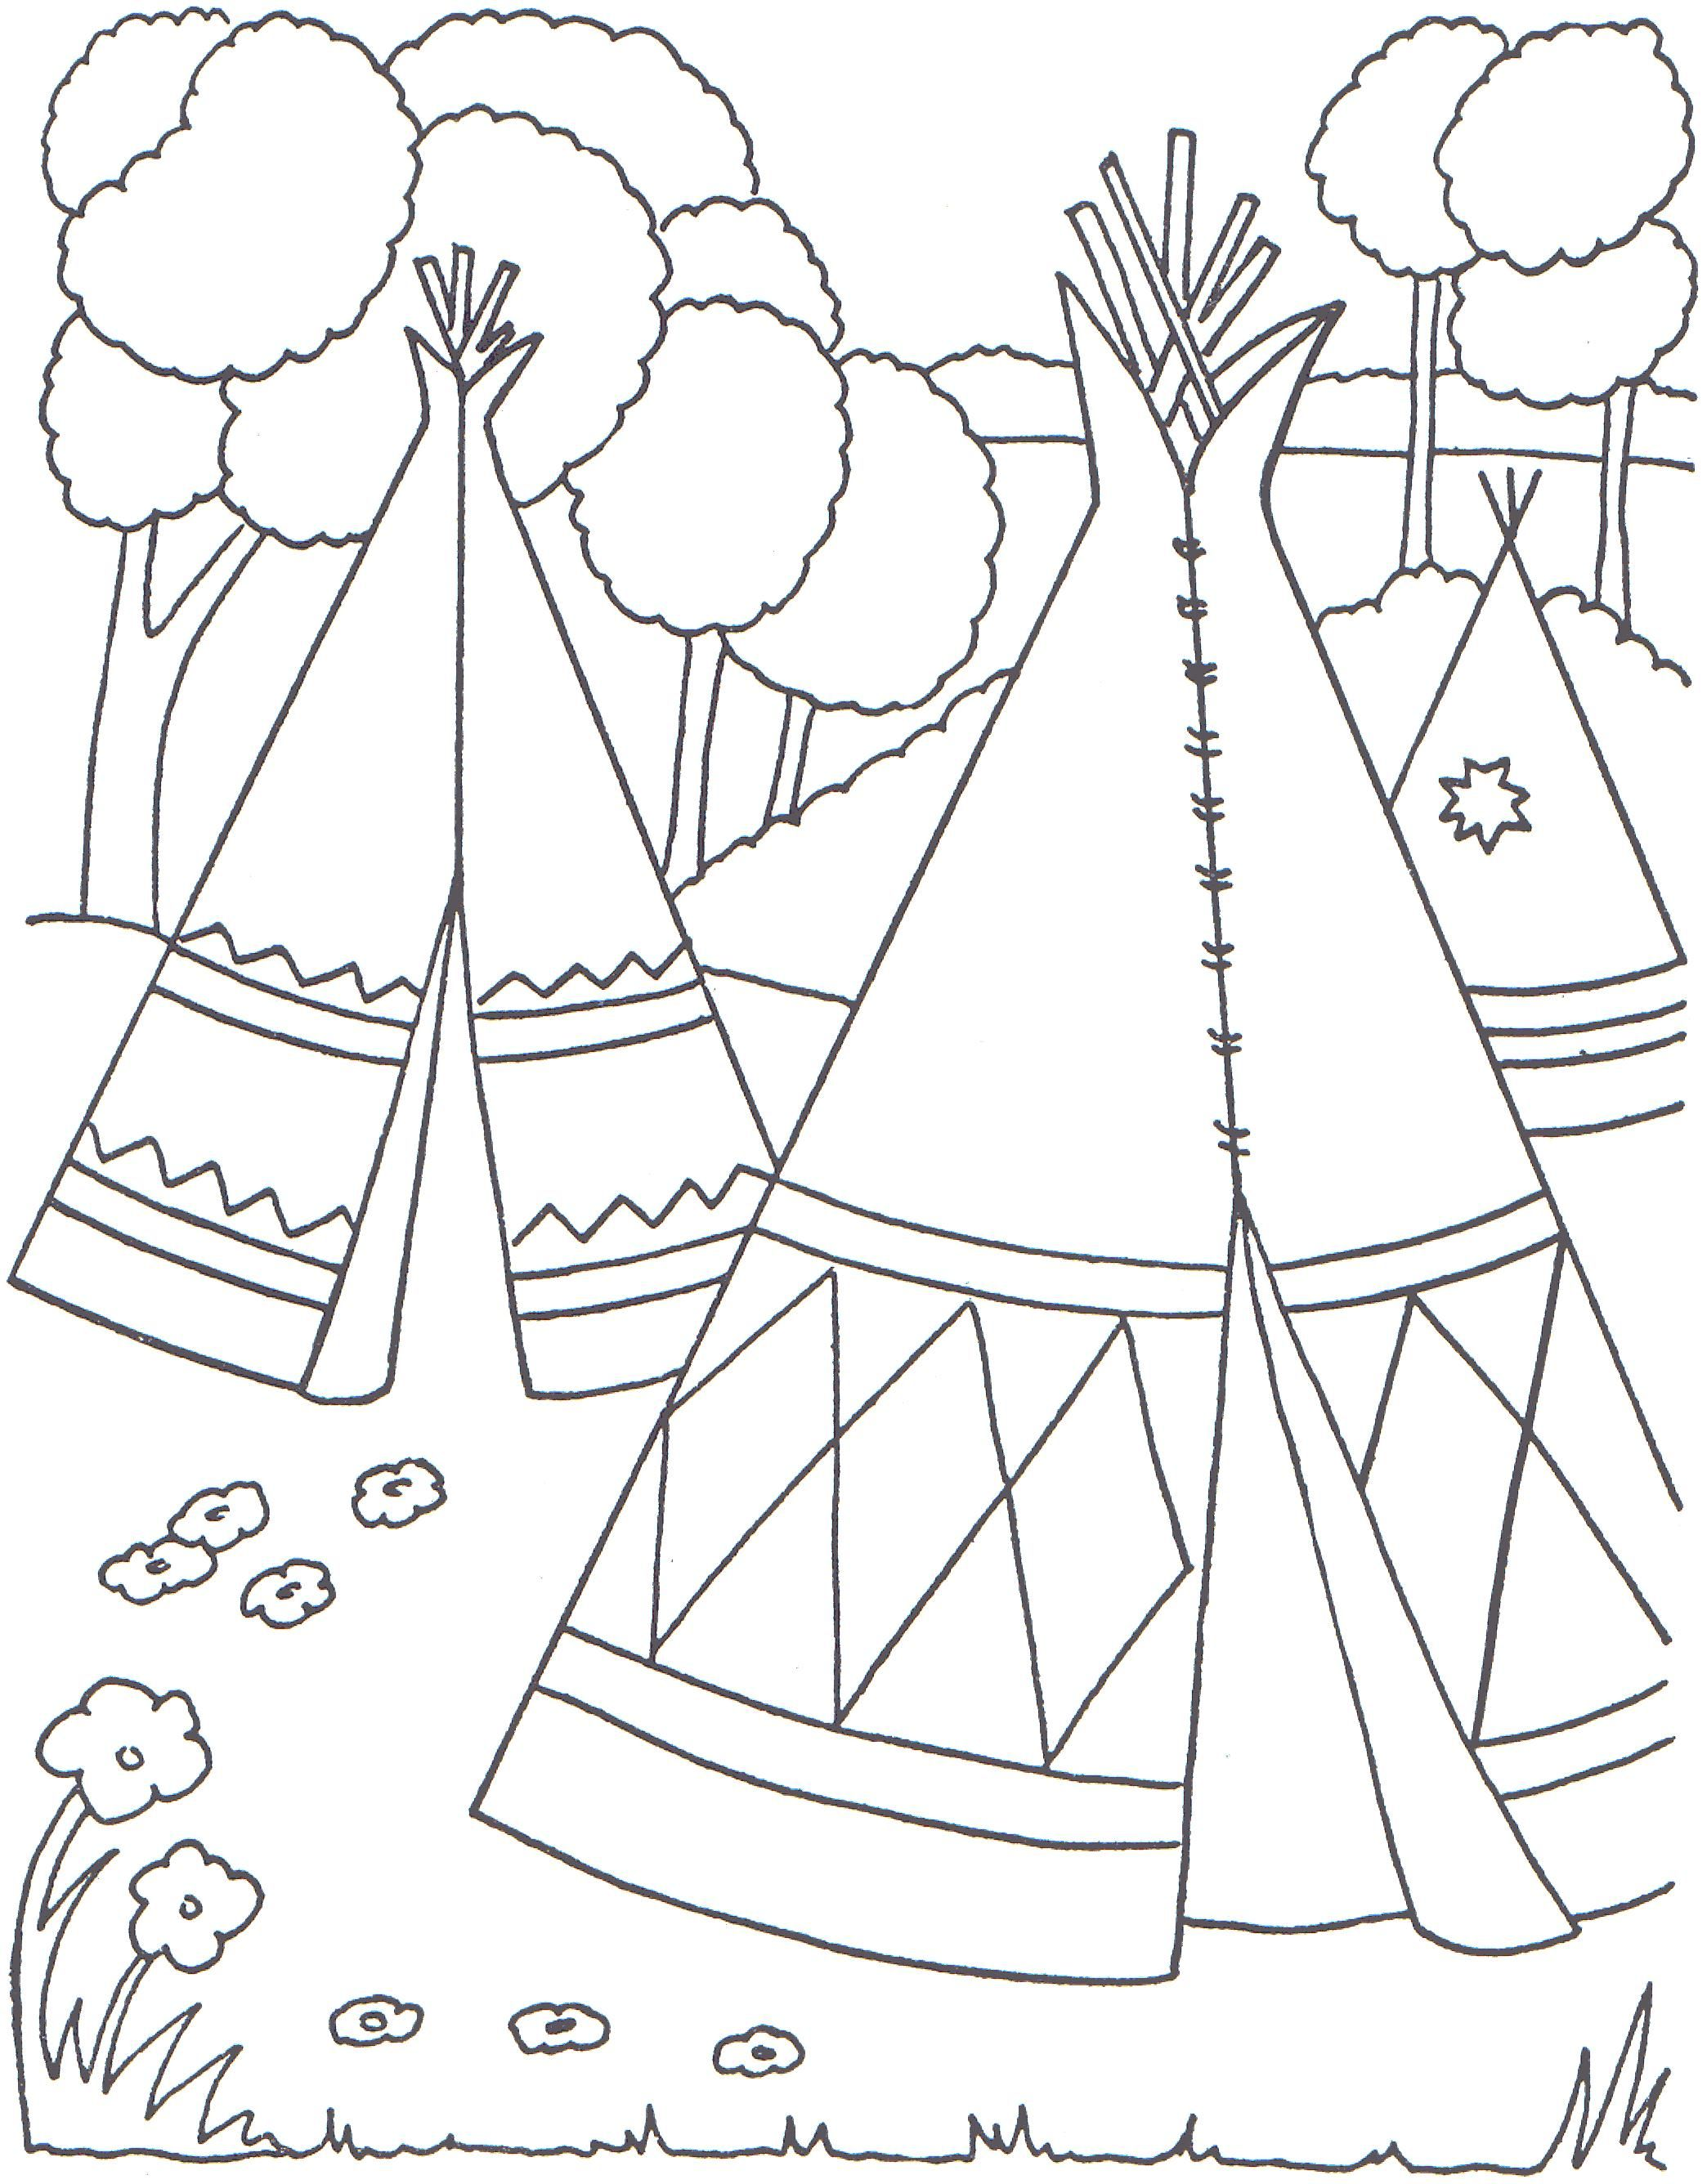 Cowboys And Indians Coloring Pages | Indian Coloring Pages